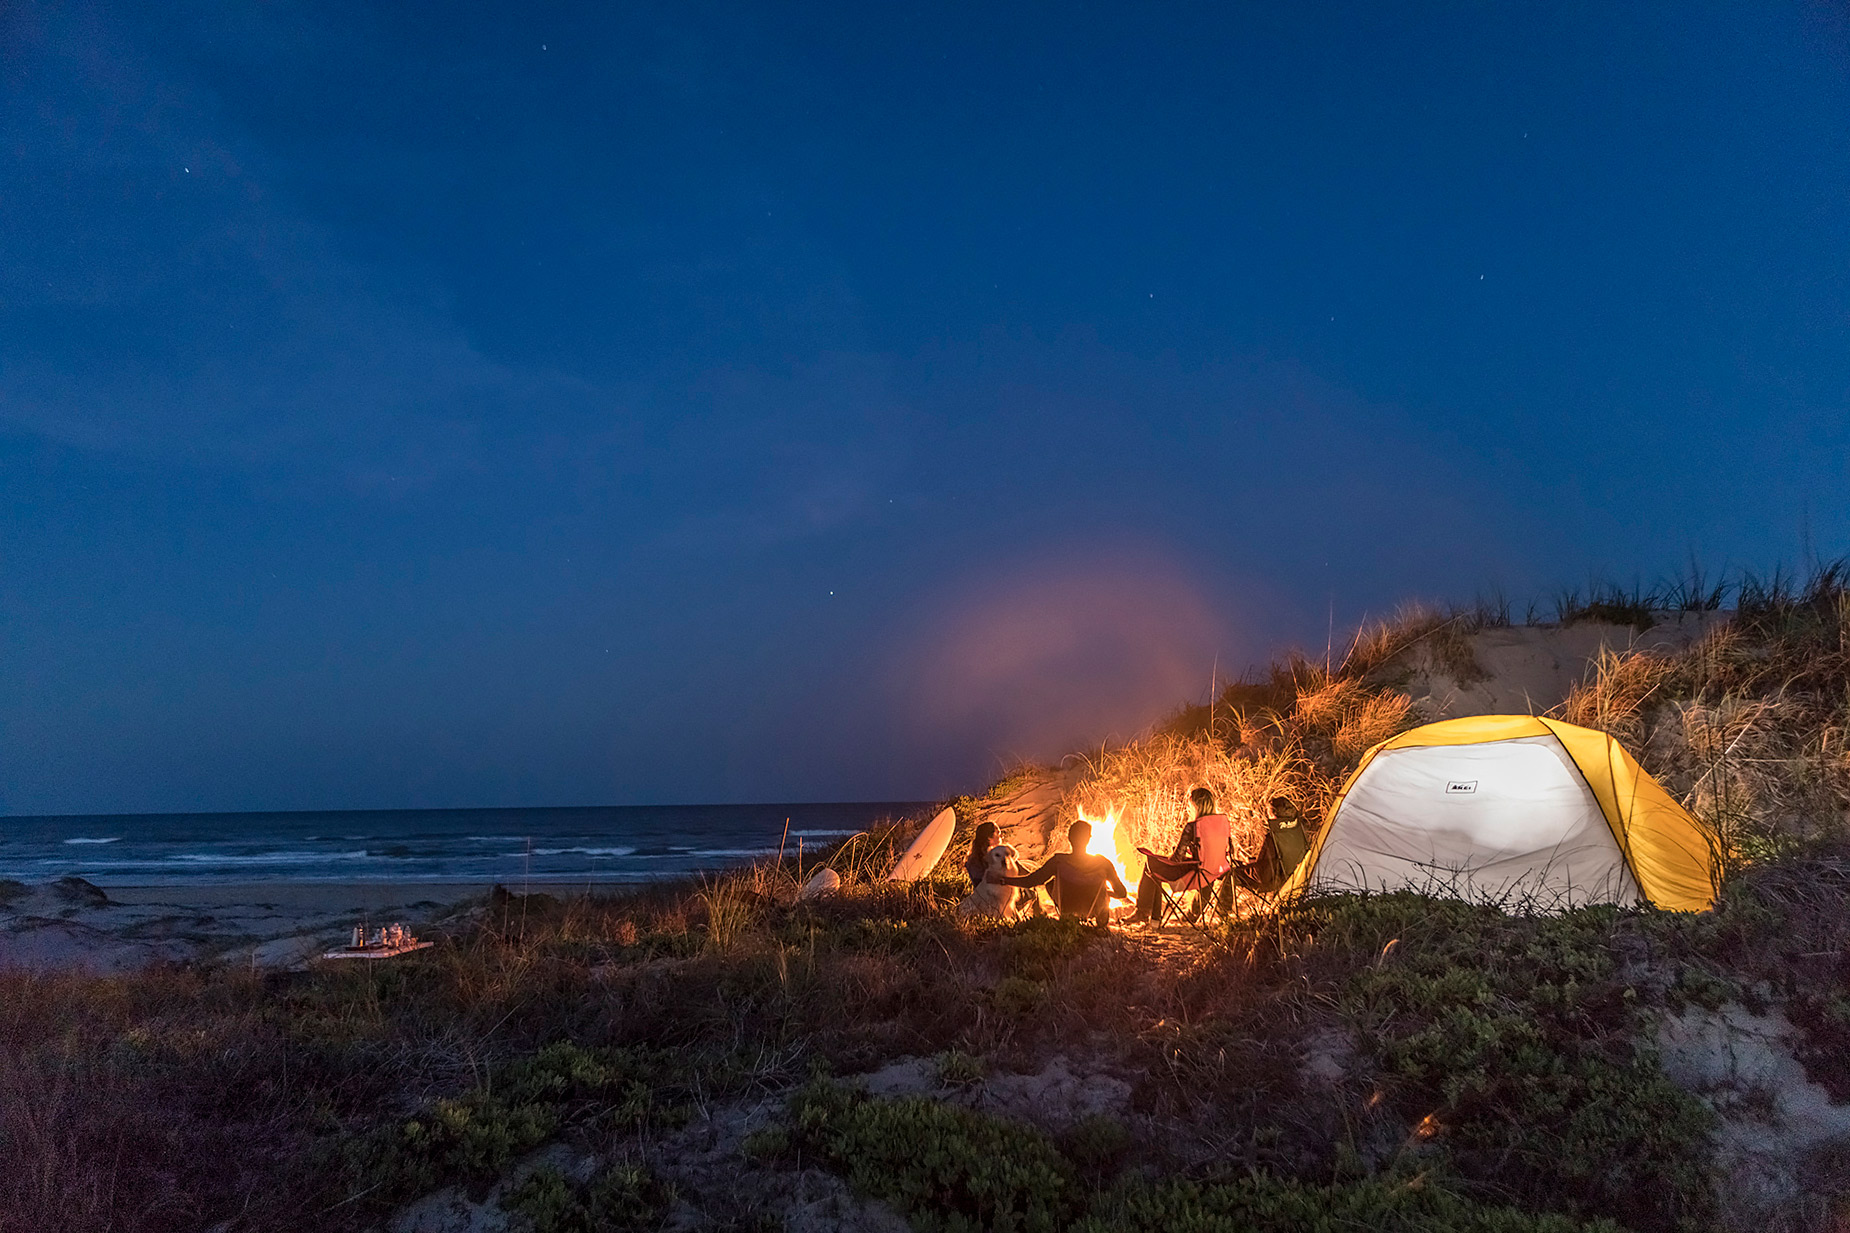 Family camping on Texas beach in dunes at dusk